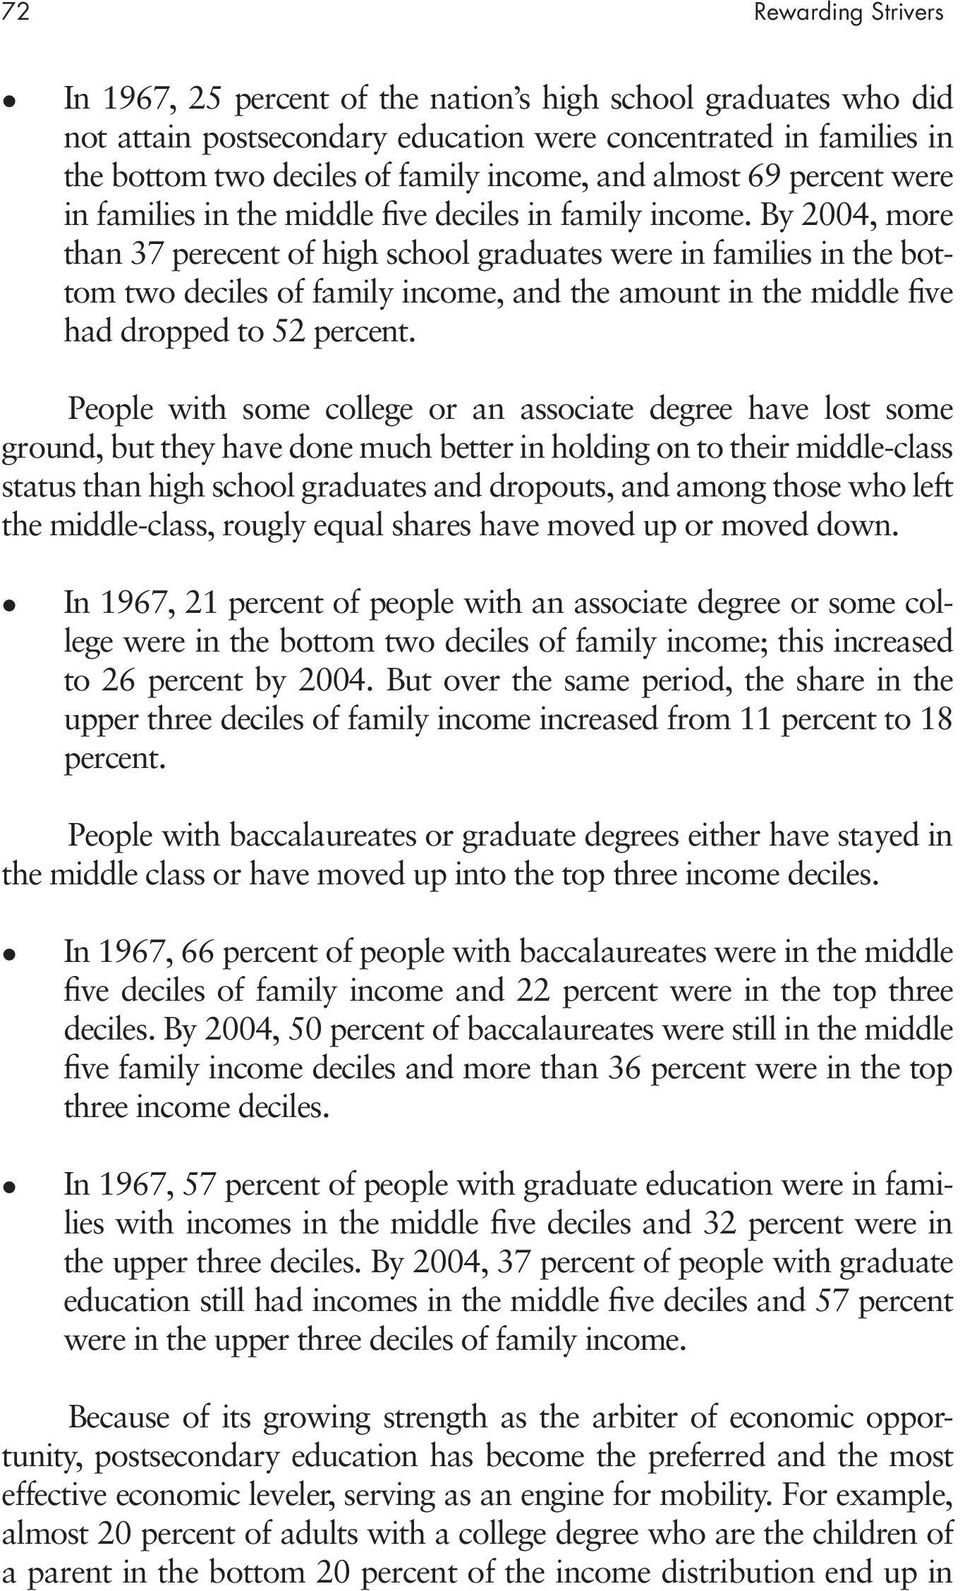 By 2004, more than 37 perecent of high school graduates were in families in the bottom two deciles of family income, and the amount in the middle five had dropped to 52 percent.